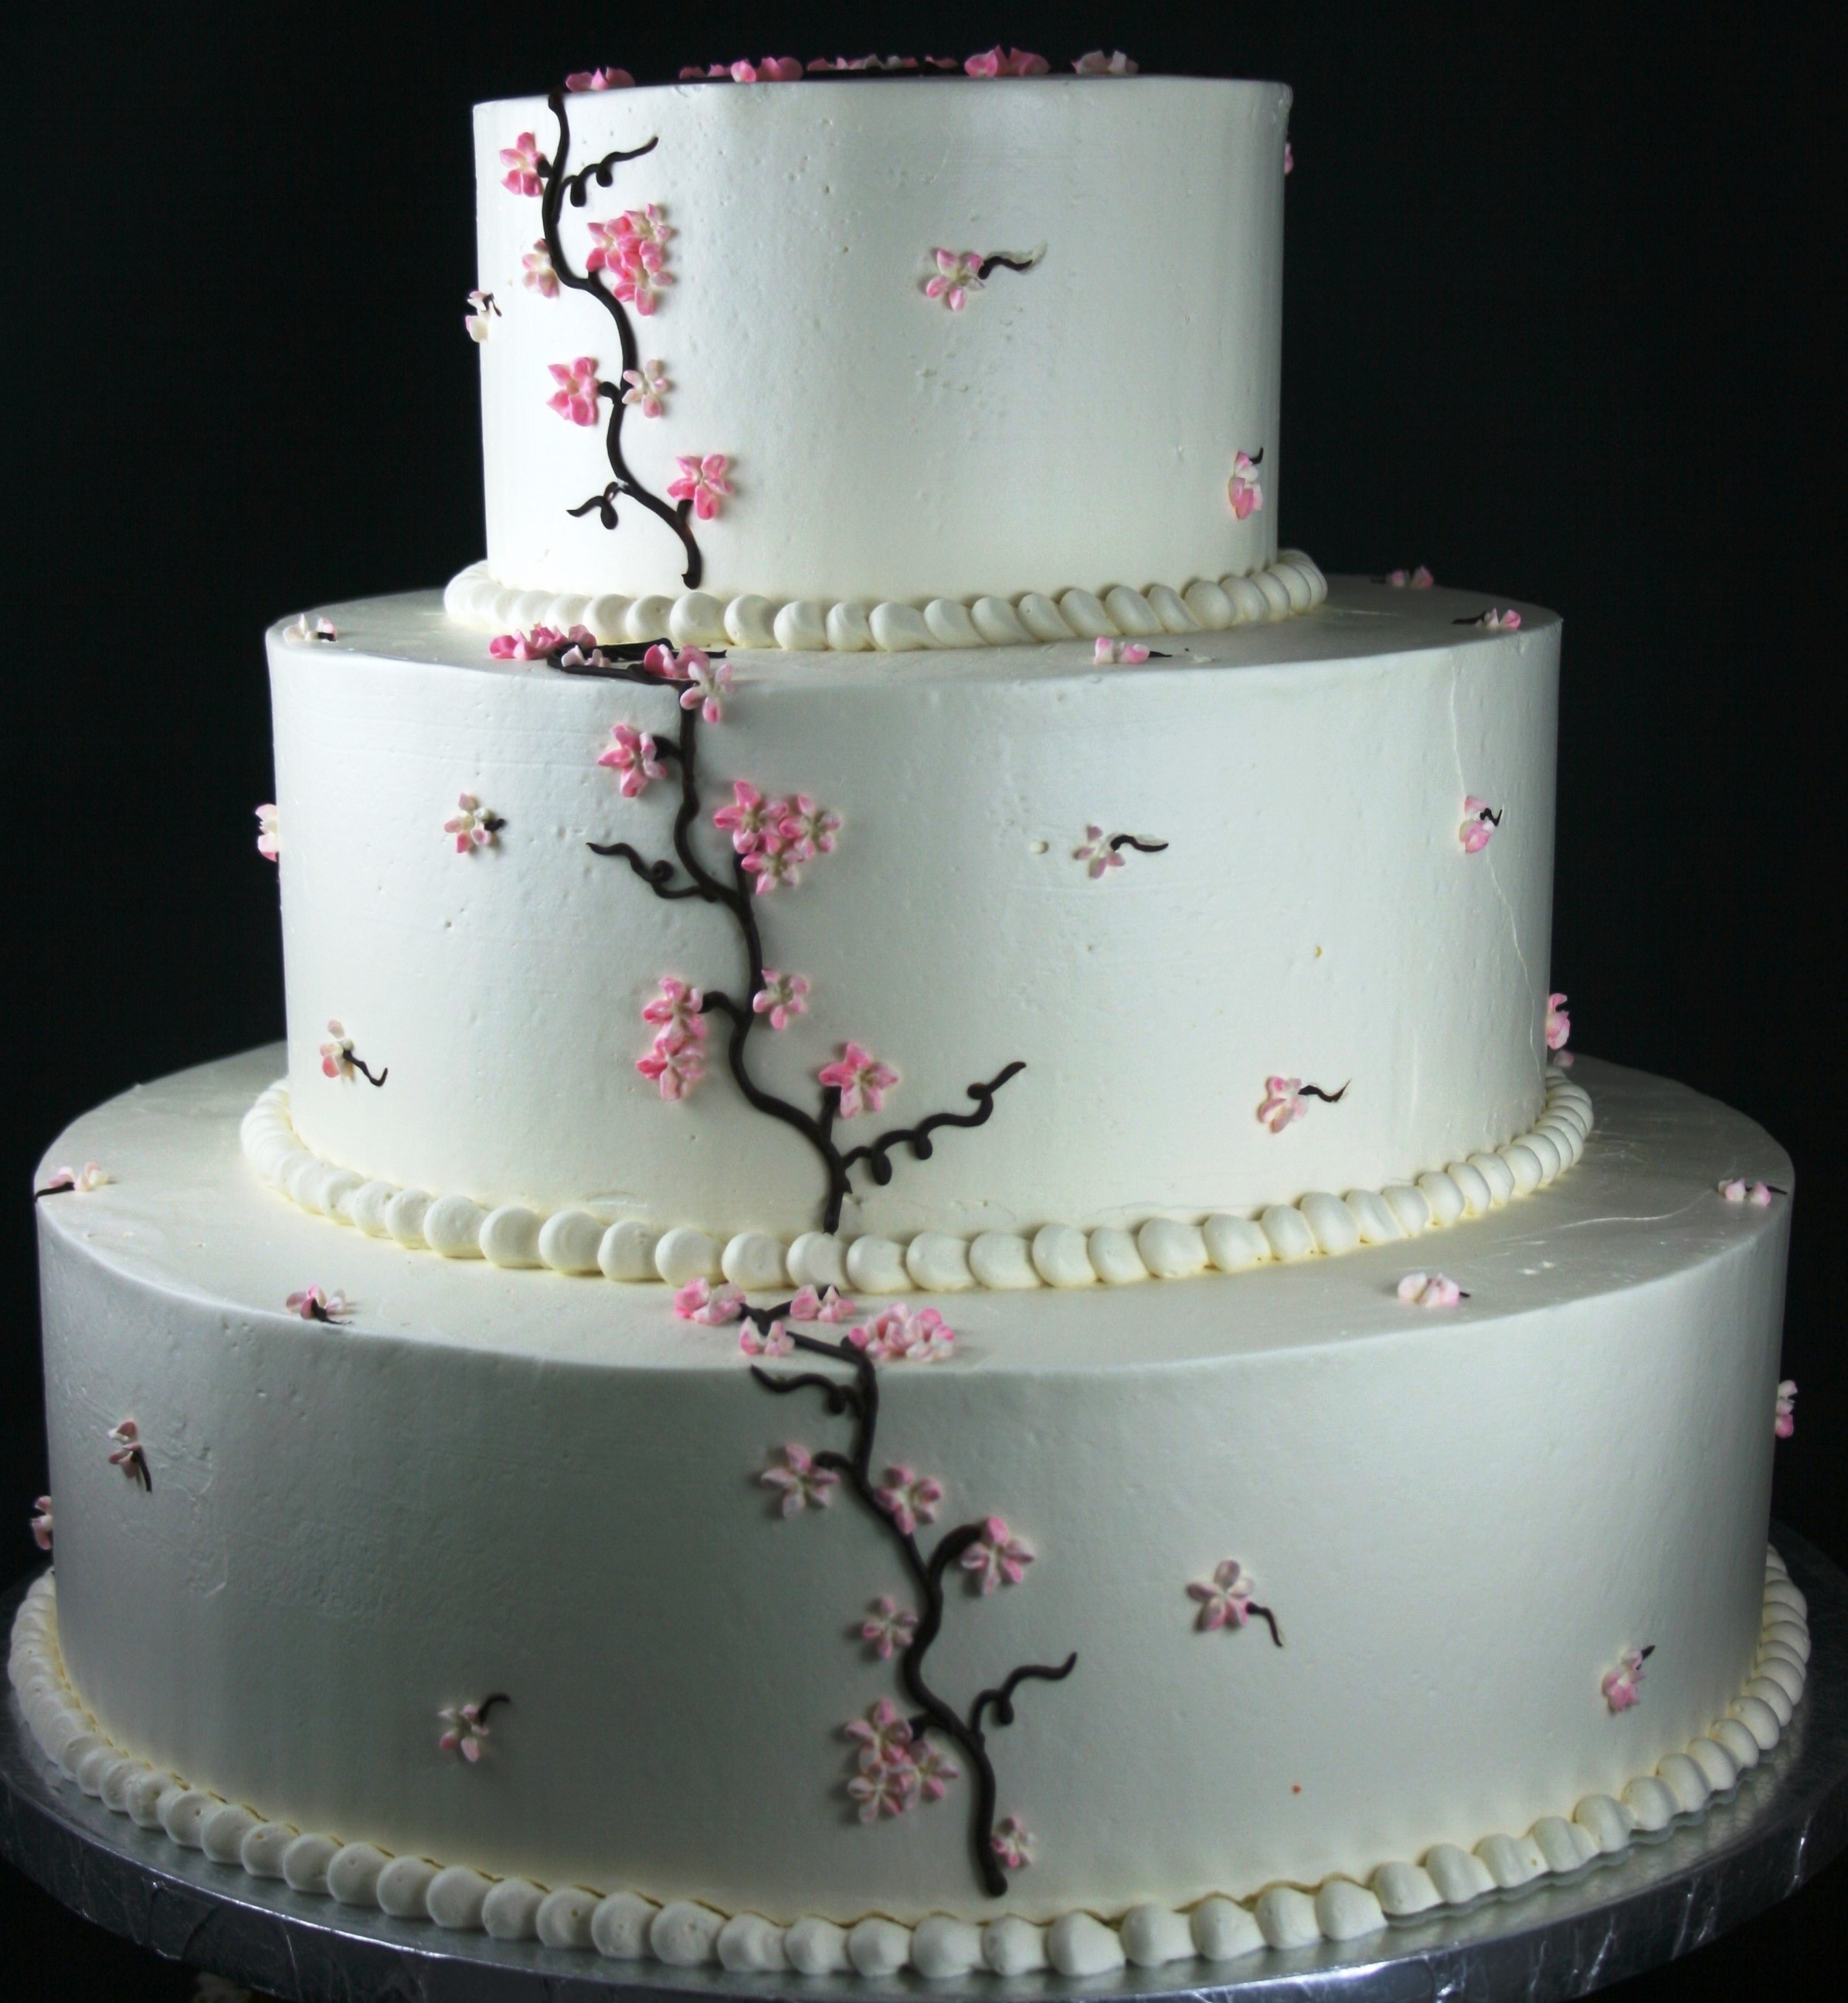 Tiered Wedding Cakes at Dolce and Biscotti Italian Bakery